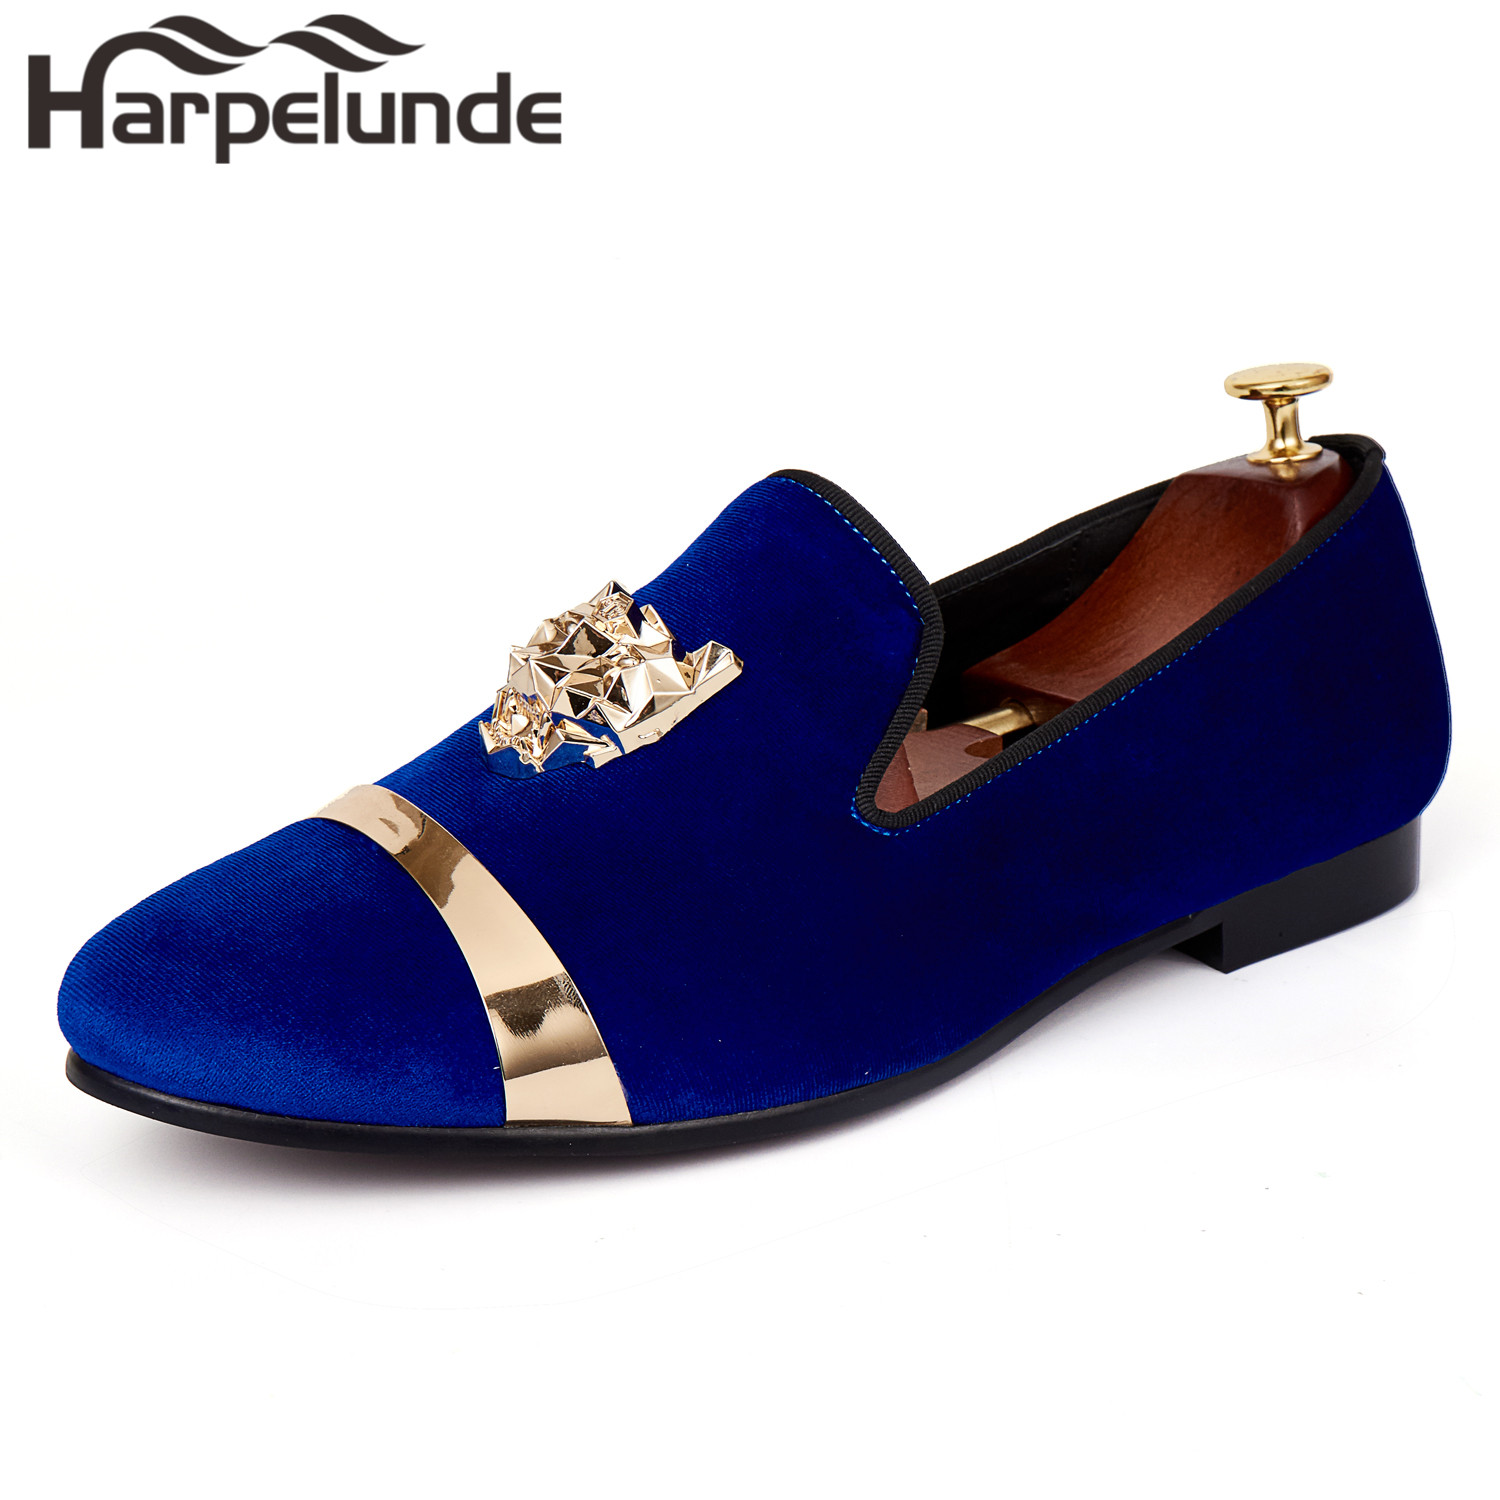 Harpelunde Men Flat Shoes Animal Buckle Blue Velvet Dress Loafers With Gold Plate Size 6-14